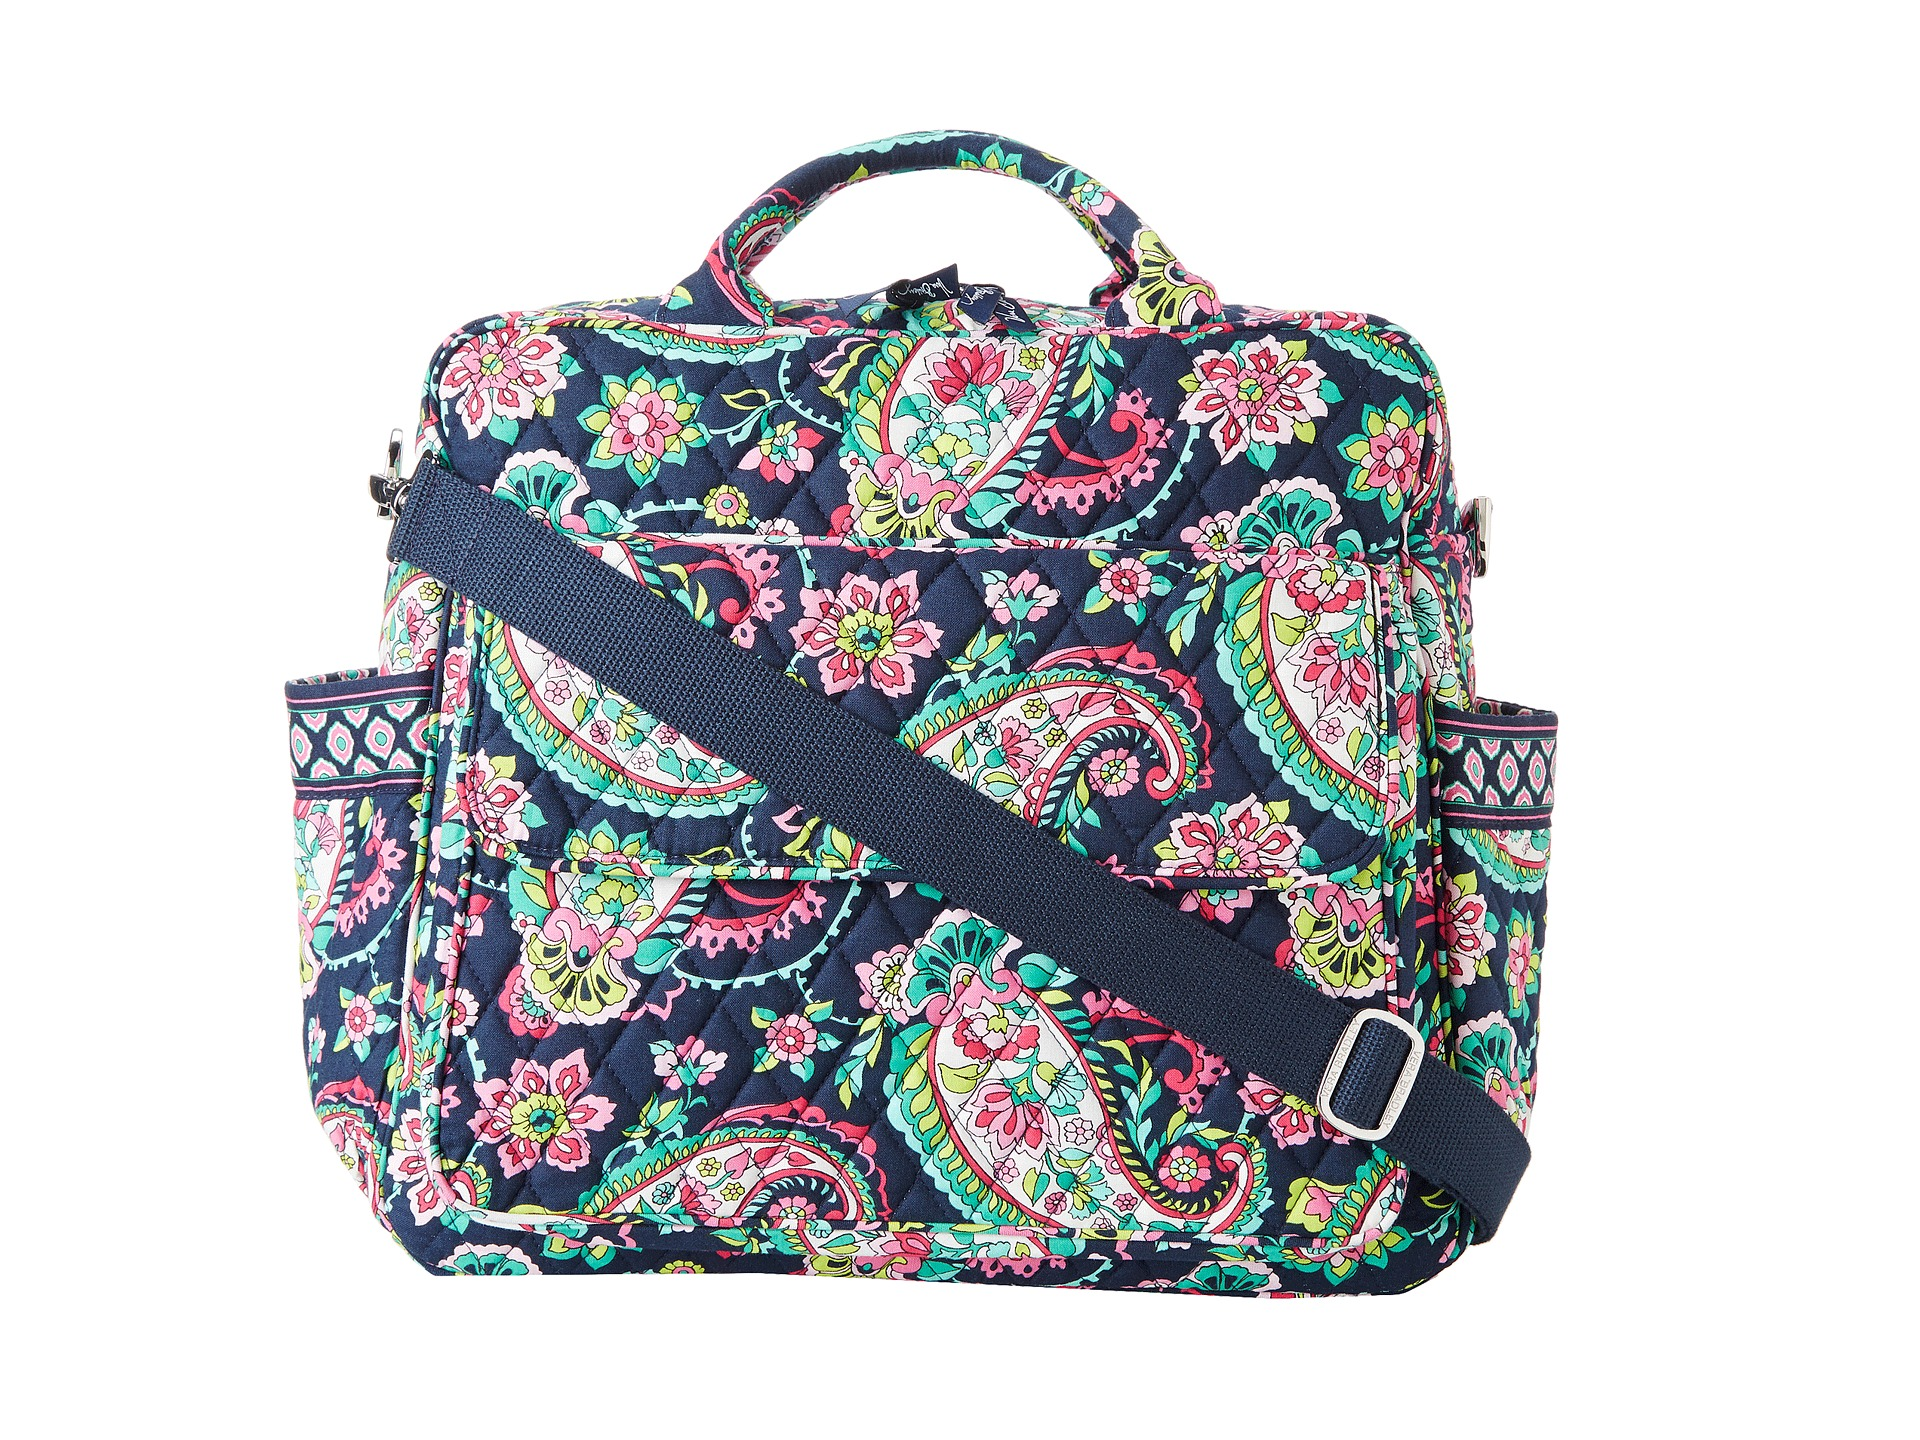 vera bradley handbags vera bradley outlet baby bag. Black Bedroom Furniture Sets. Home Design Ideas